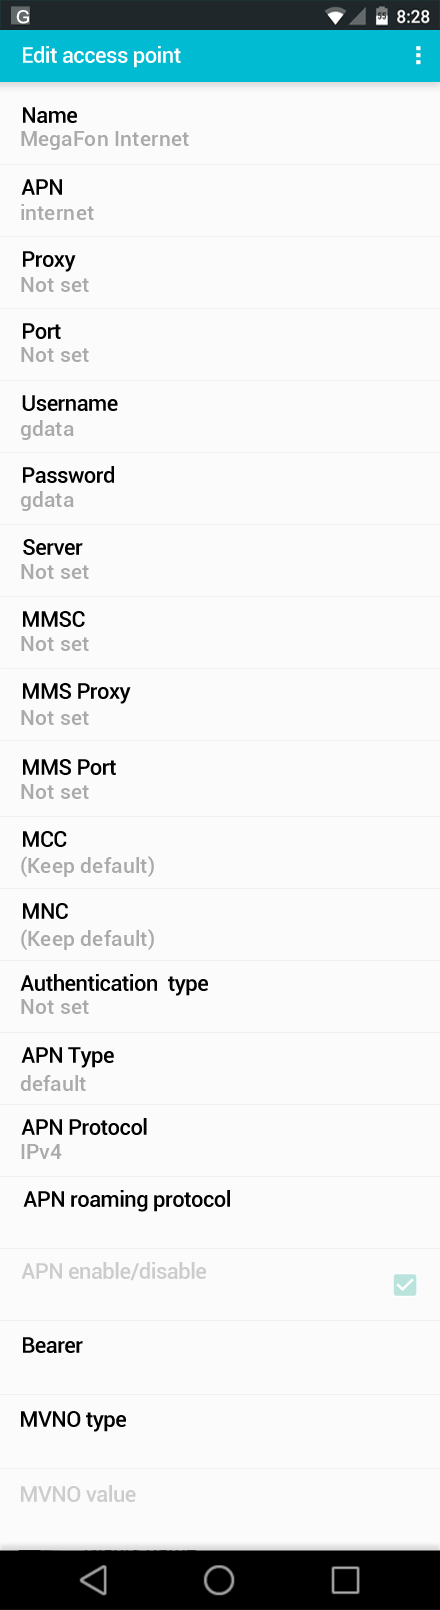 MegaFon Internet APN settings for Android